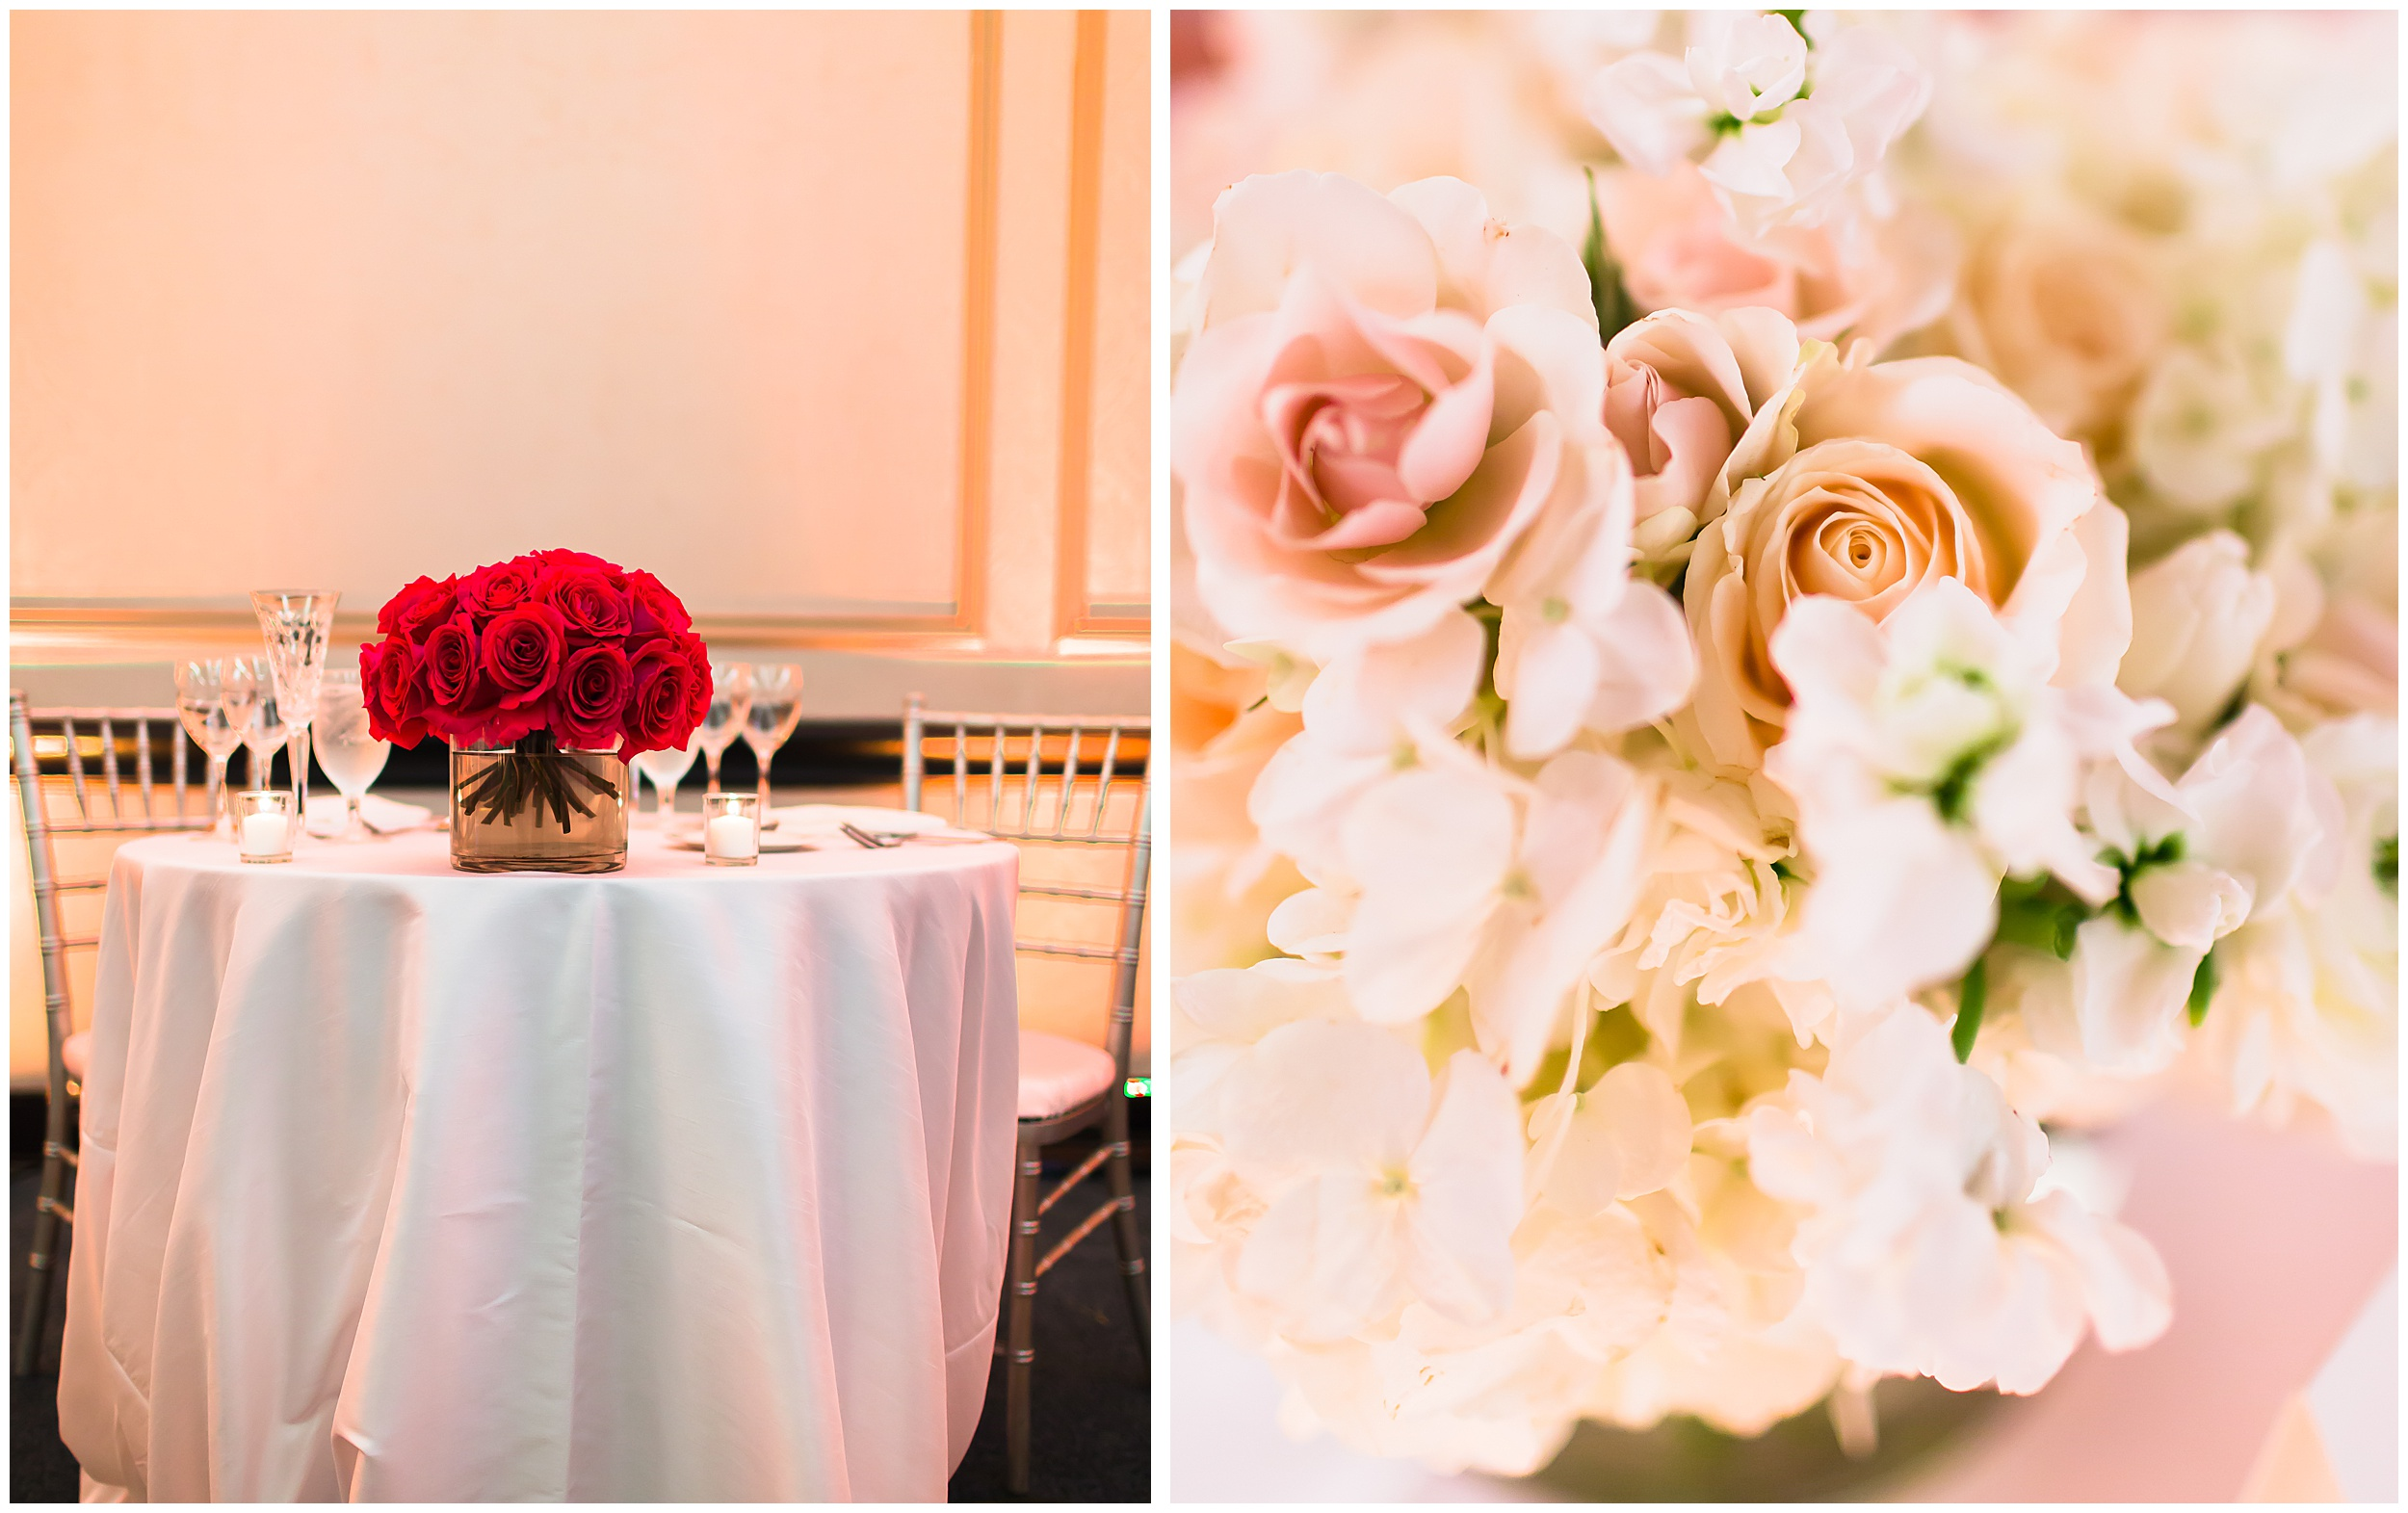 flowers-roses-uplighting-reception